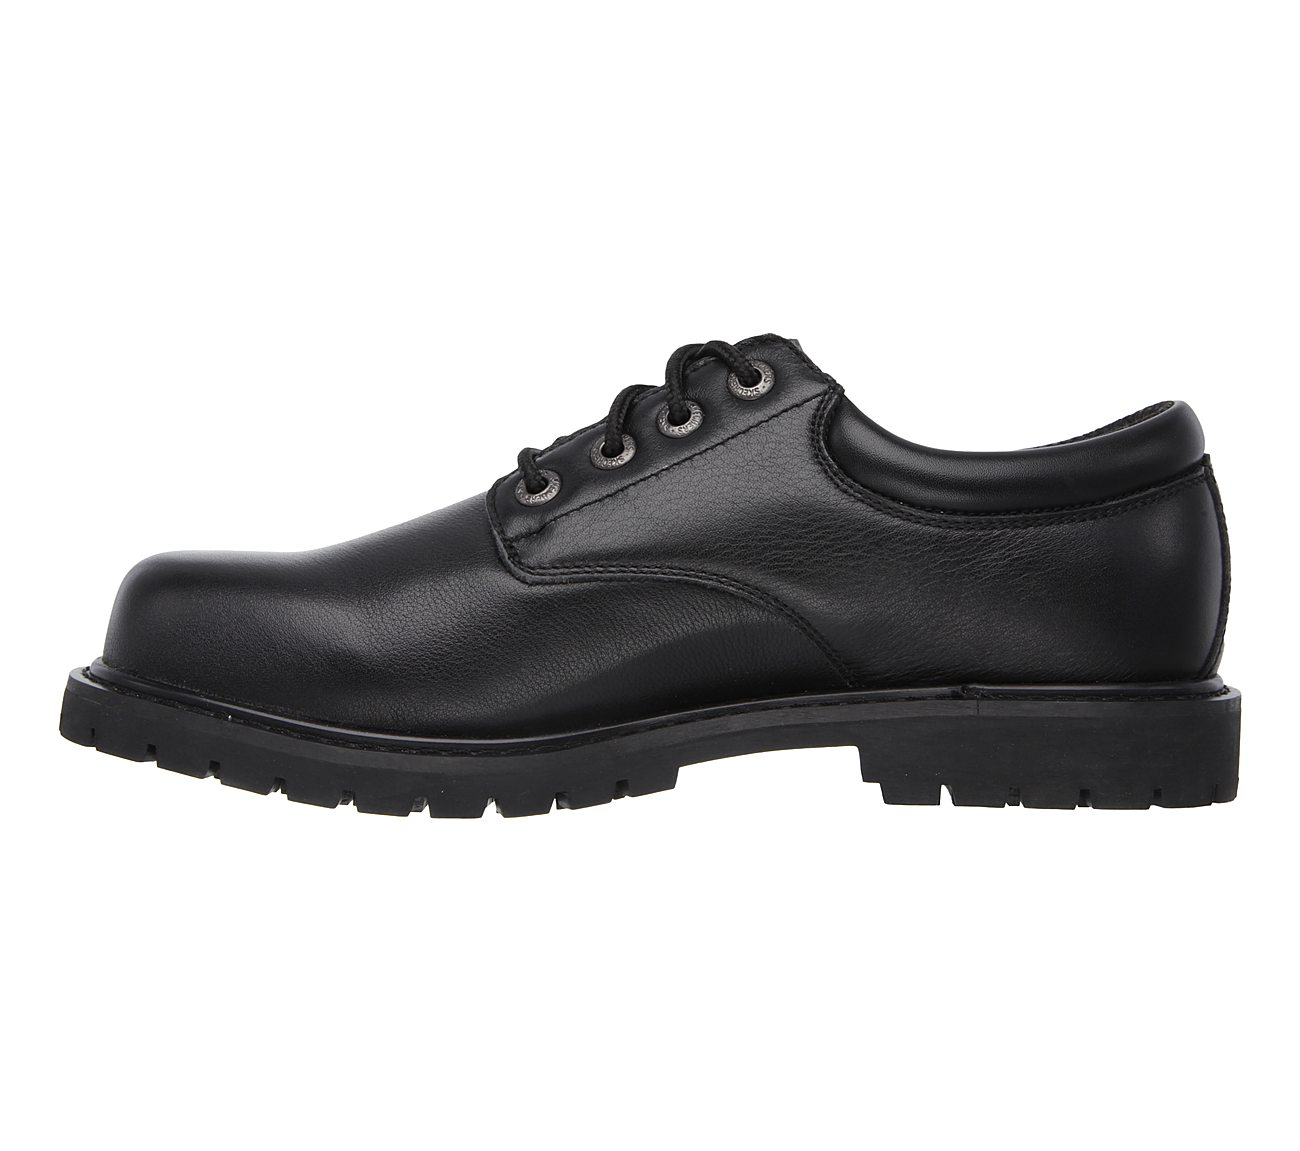 a4be8391a3f Buy SKECHERS Work Relaxed Fit  Cottonwood - Elks SR Work Shoes only ...